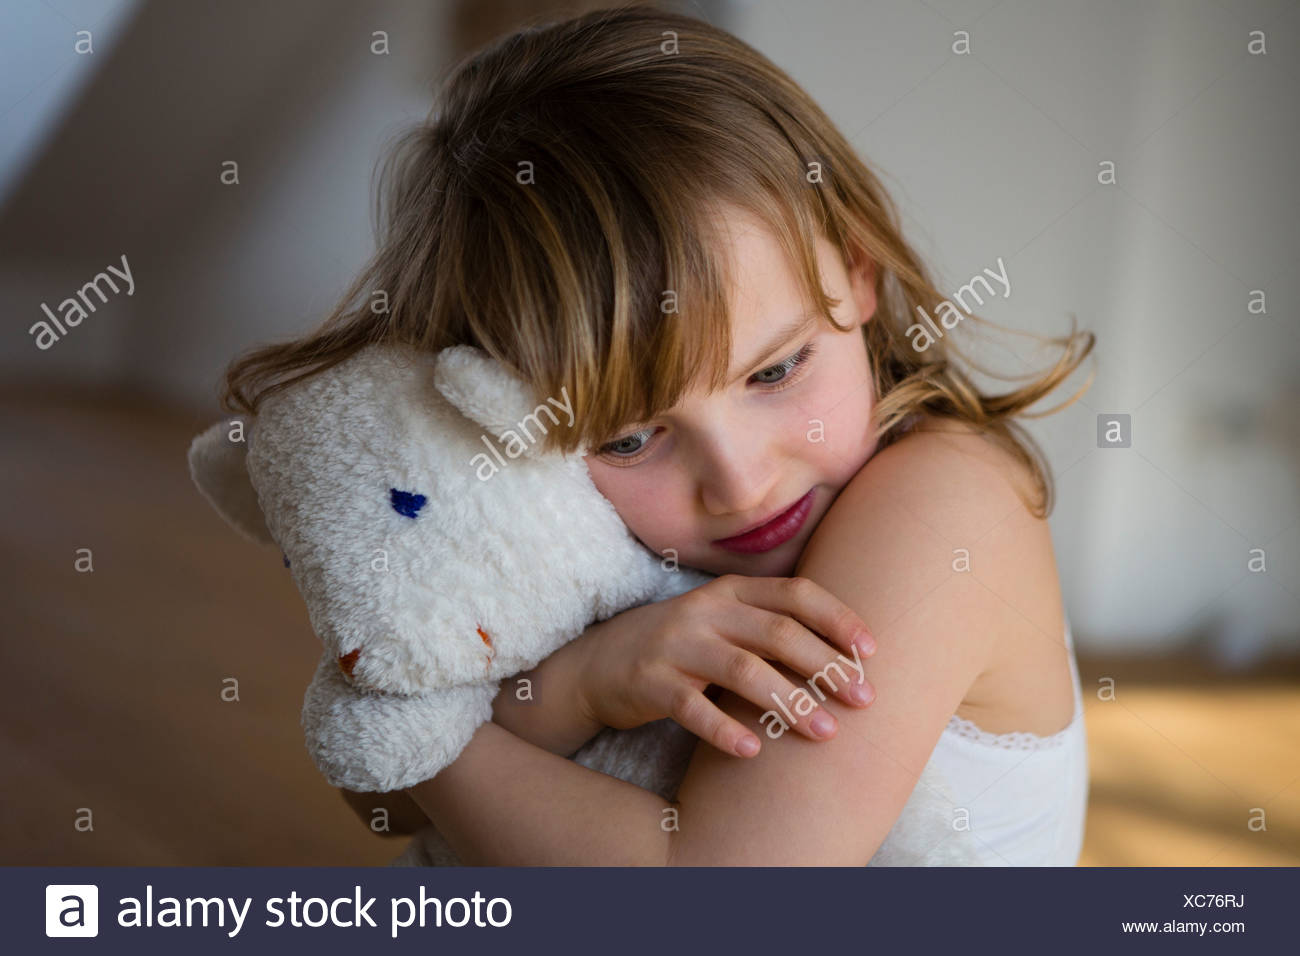 Distressed girl holding onto teddy bear - Stock Image